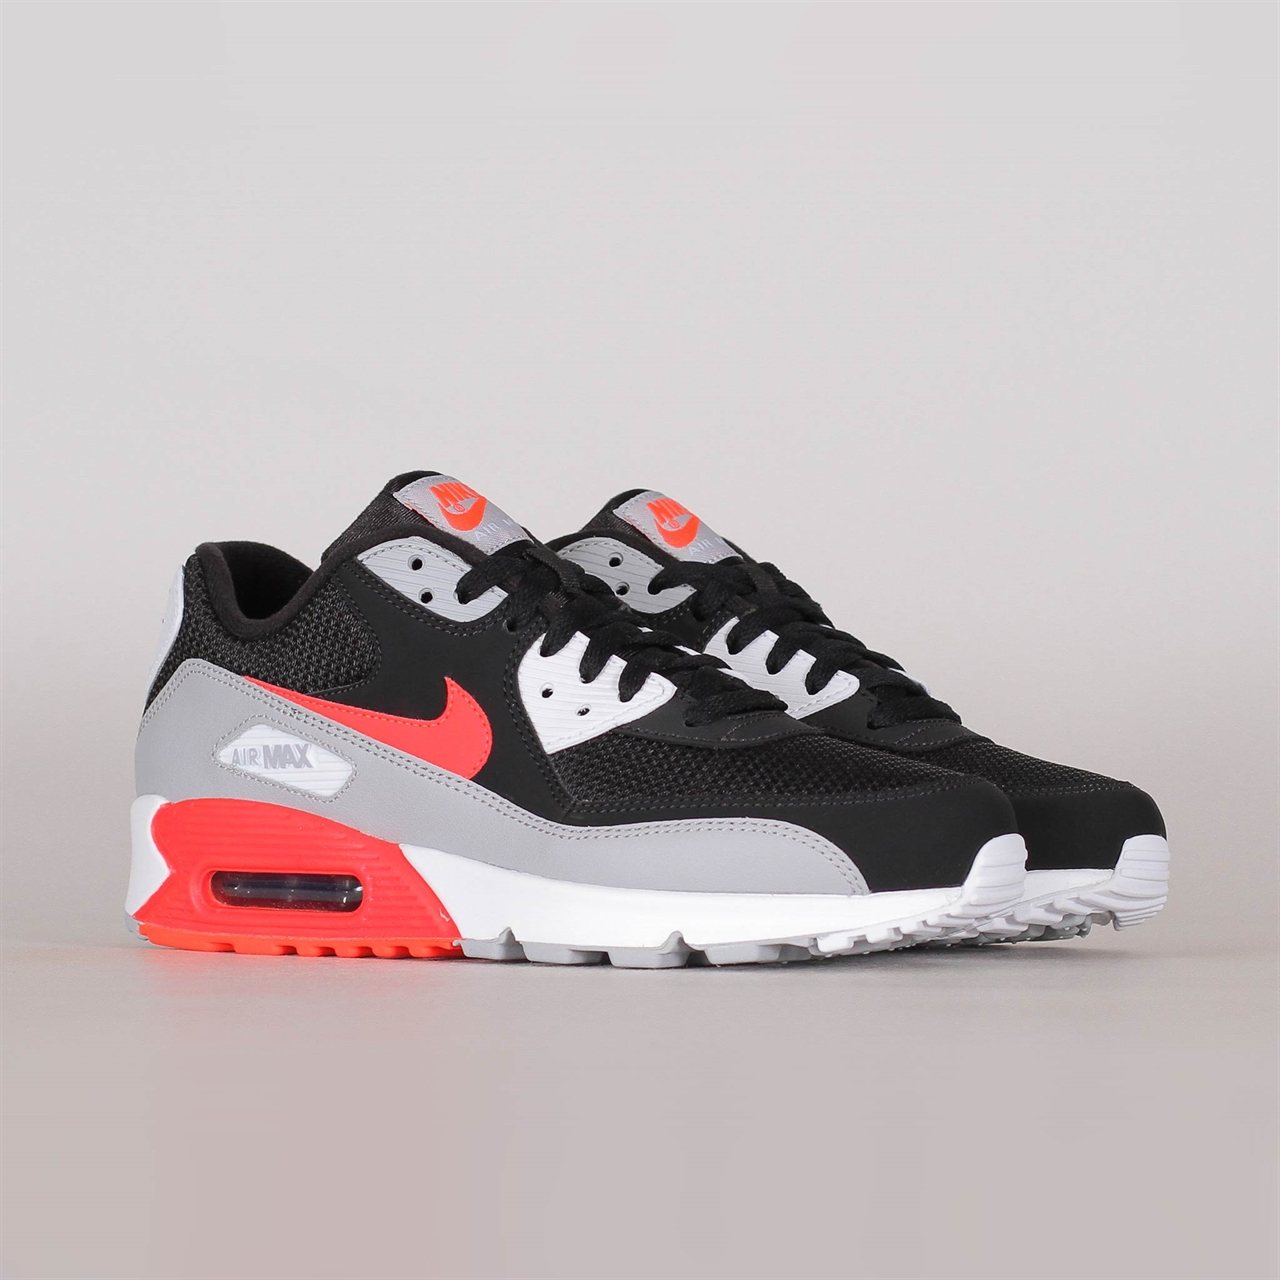 3e6136a17d Nike Air Max 90 Essential (AJ1285-012) - Shelta